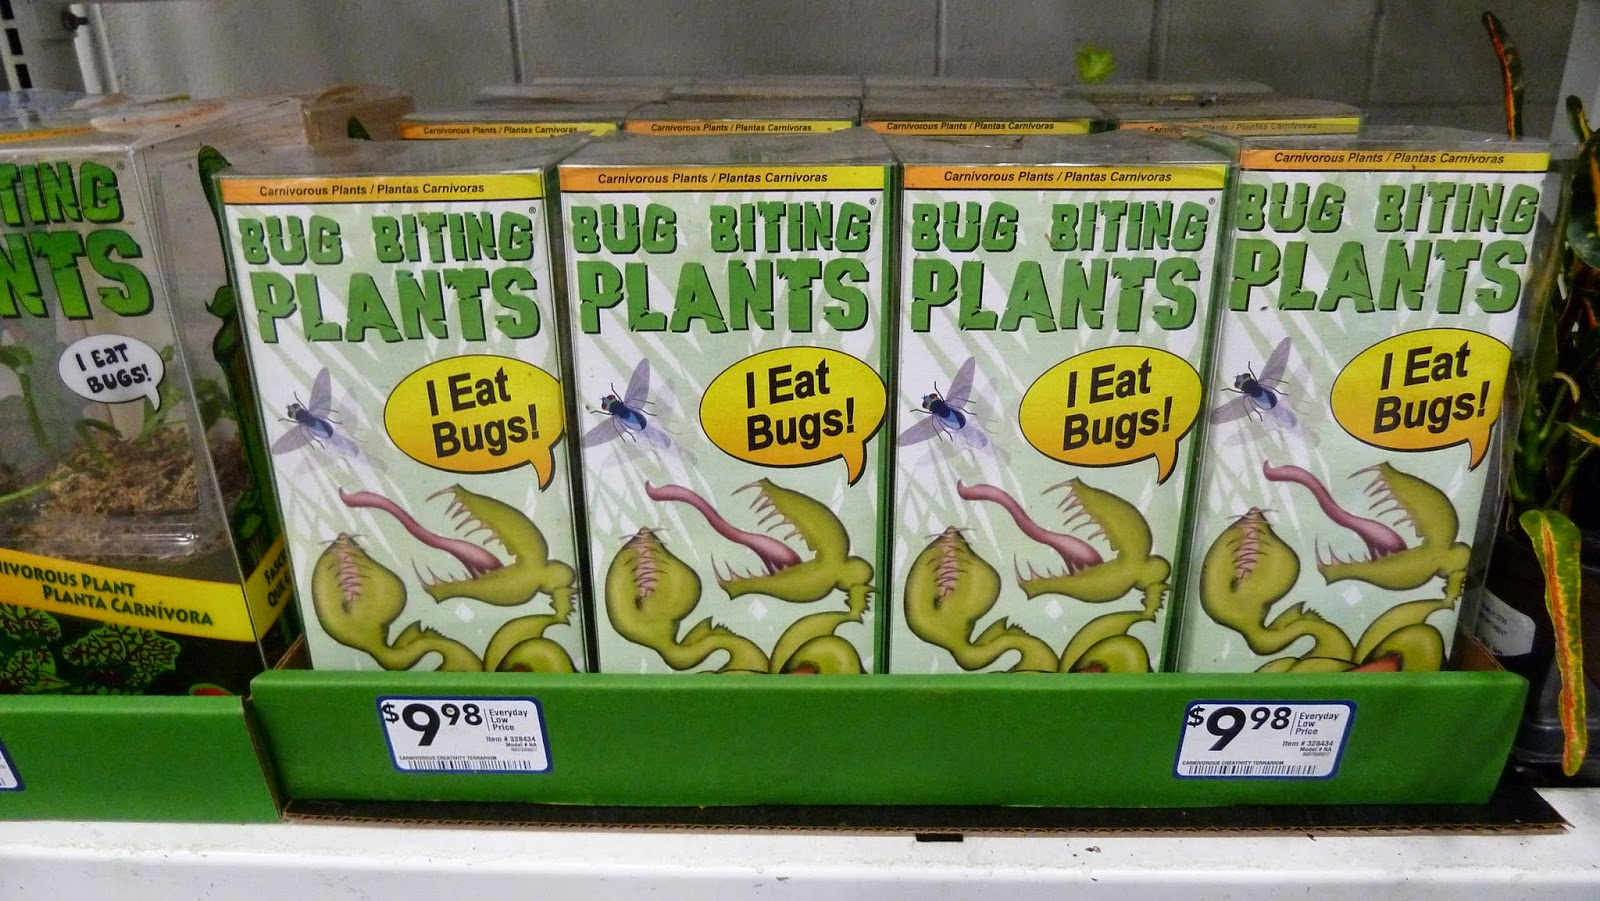 Hooray Plants Bug Biting Plants Terrarium Kit From Lowe S